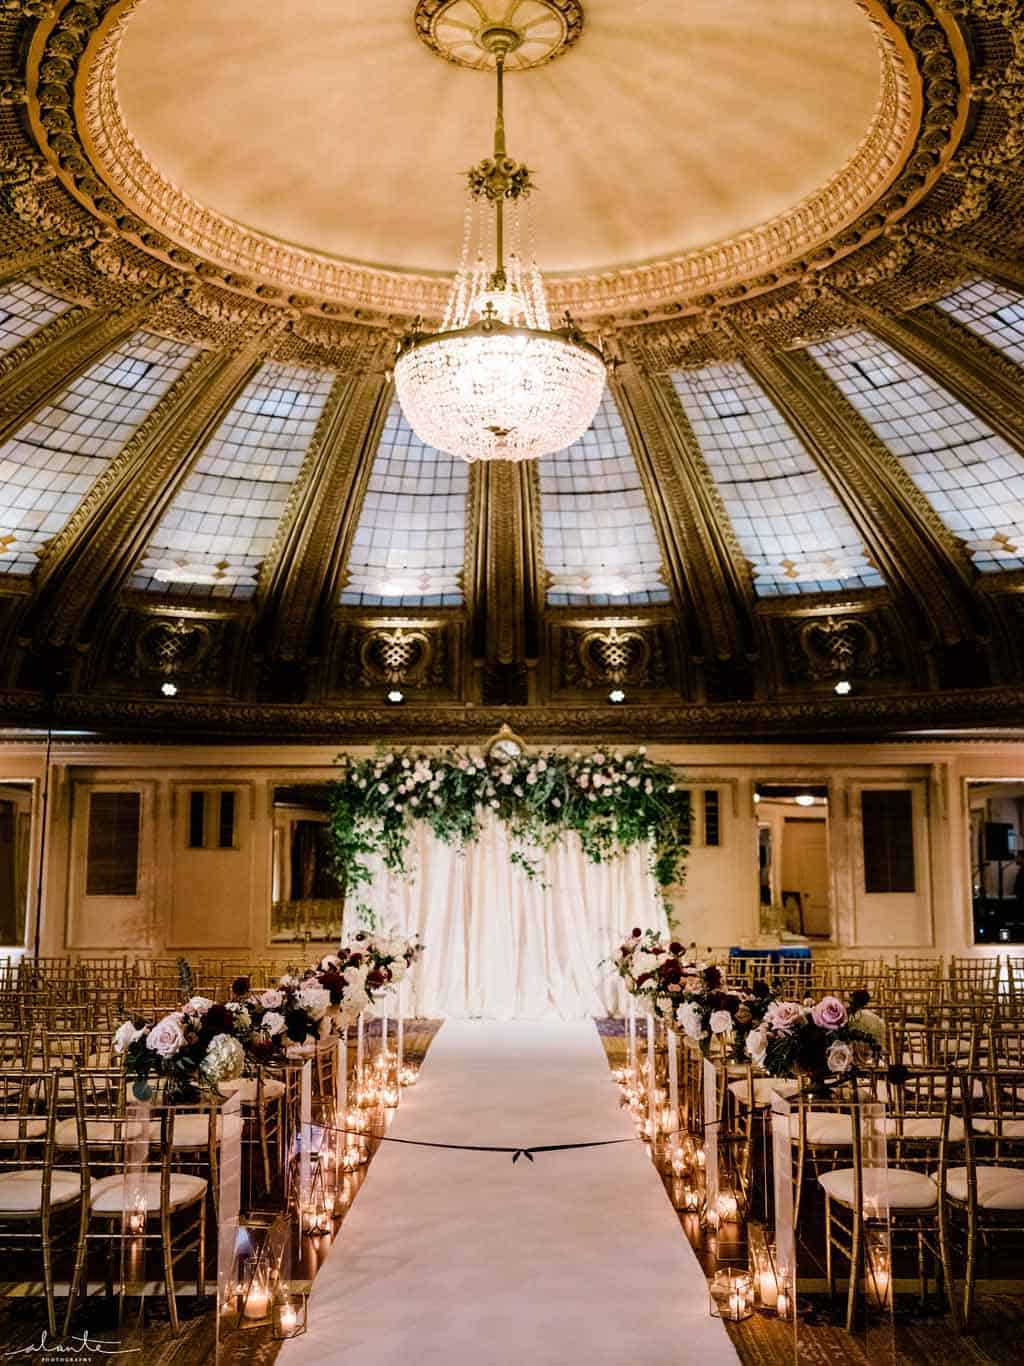 Draped ceremony arch with lush greenery and roses in the Dome Room at the Arctic Club Seattle